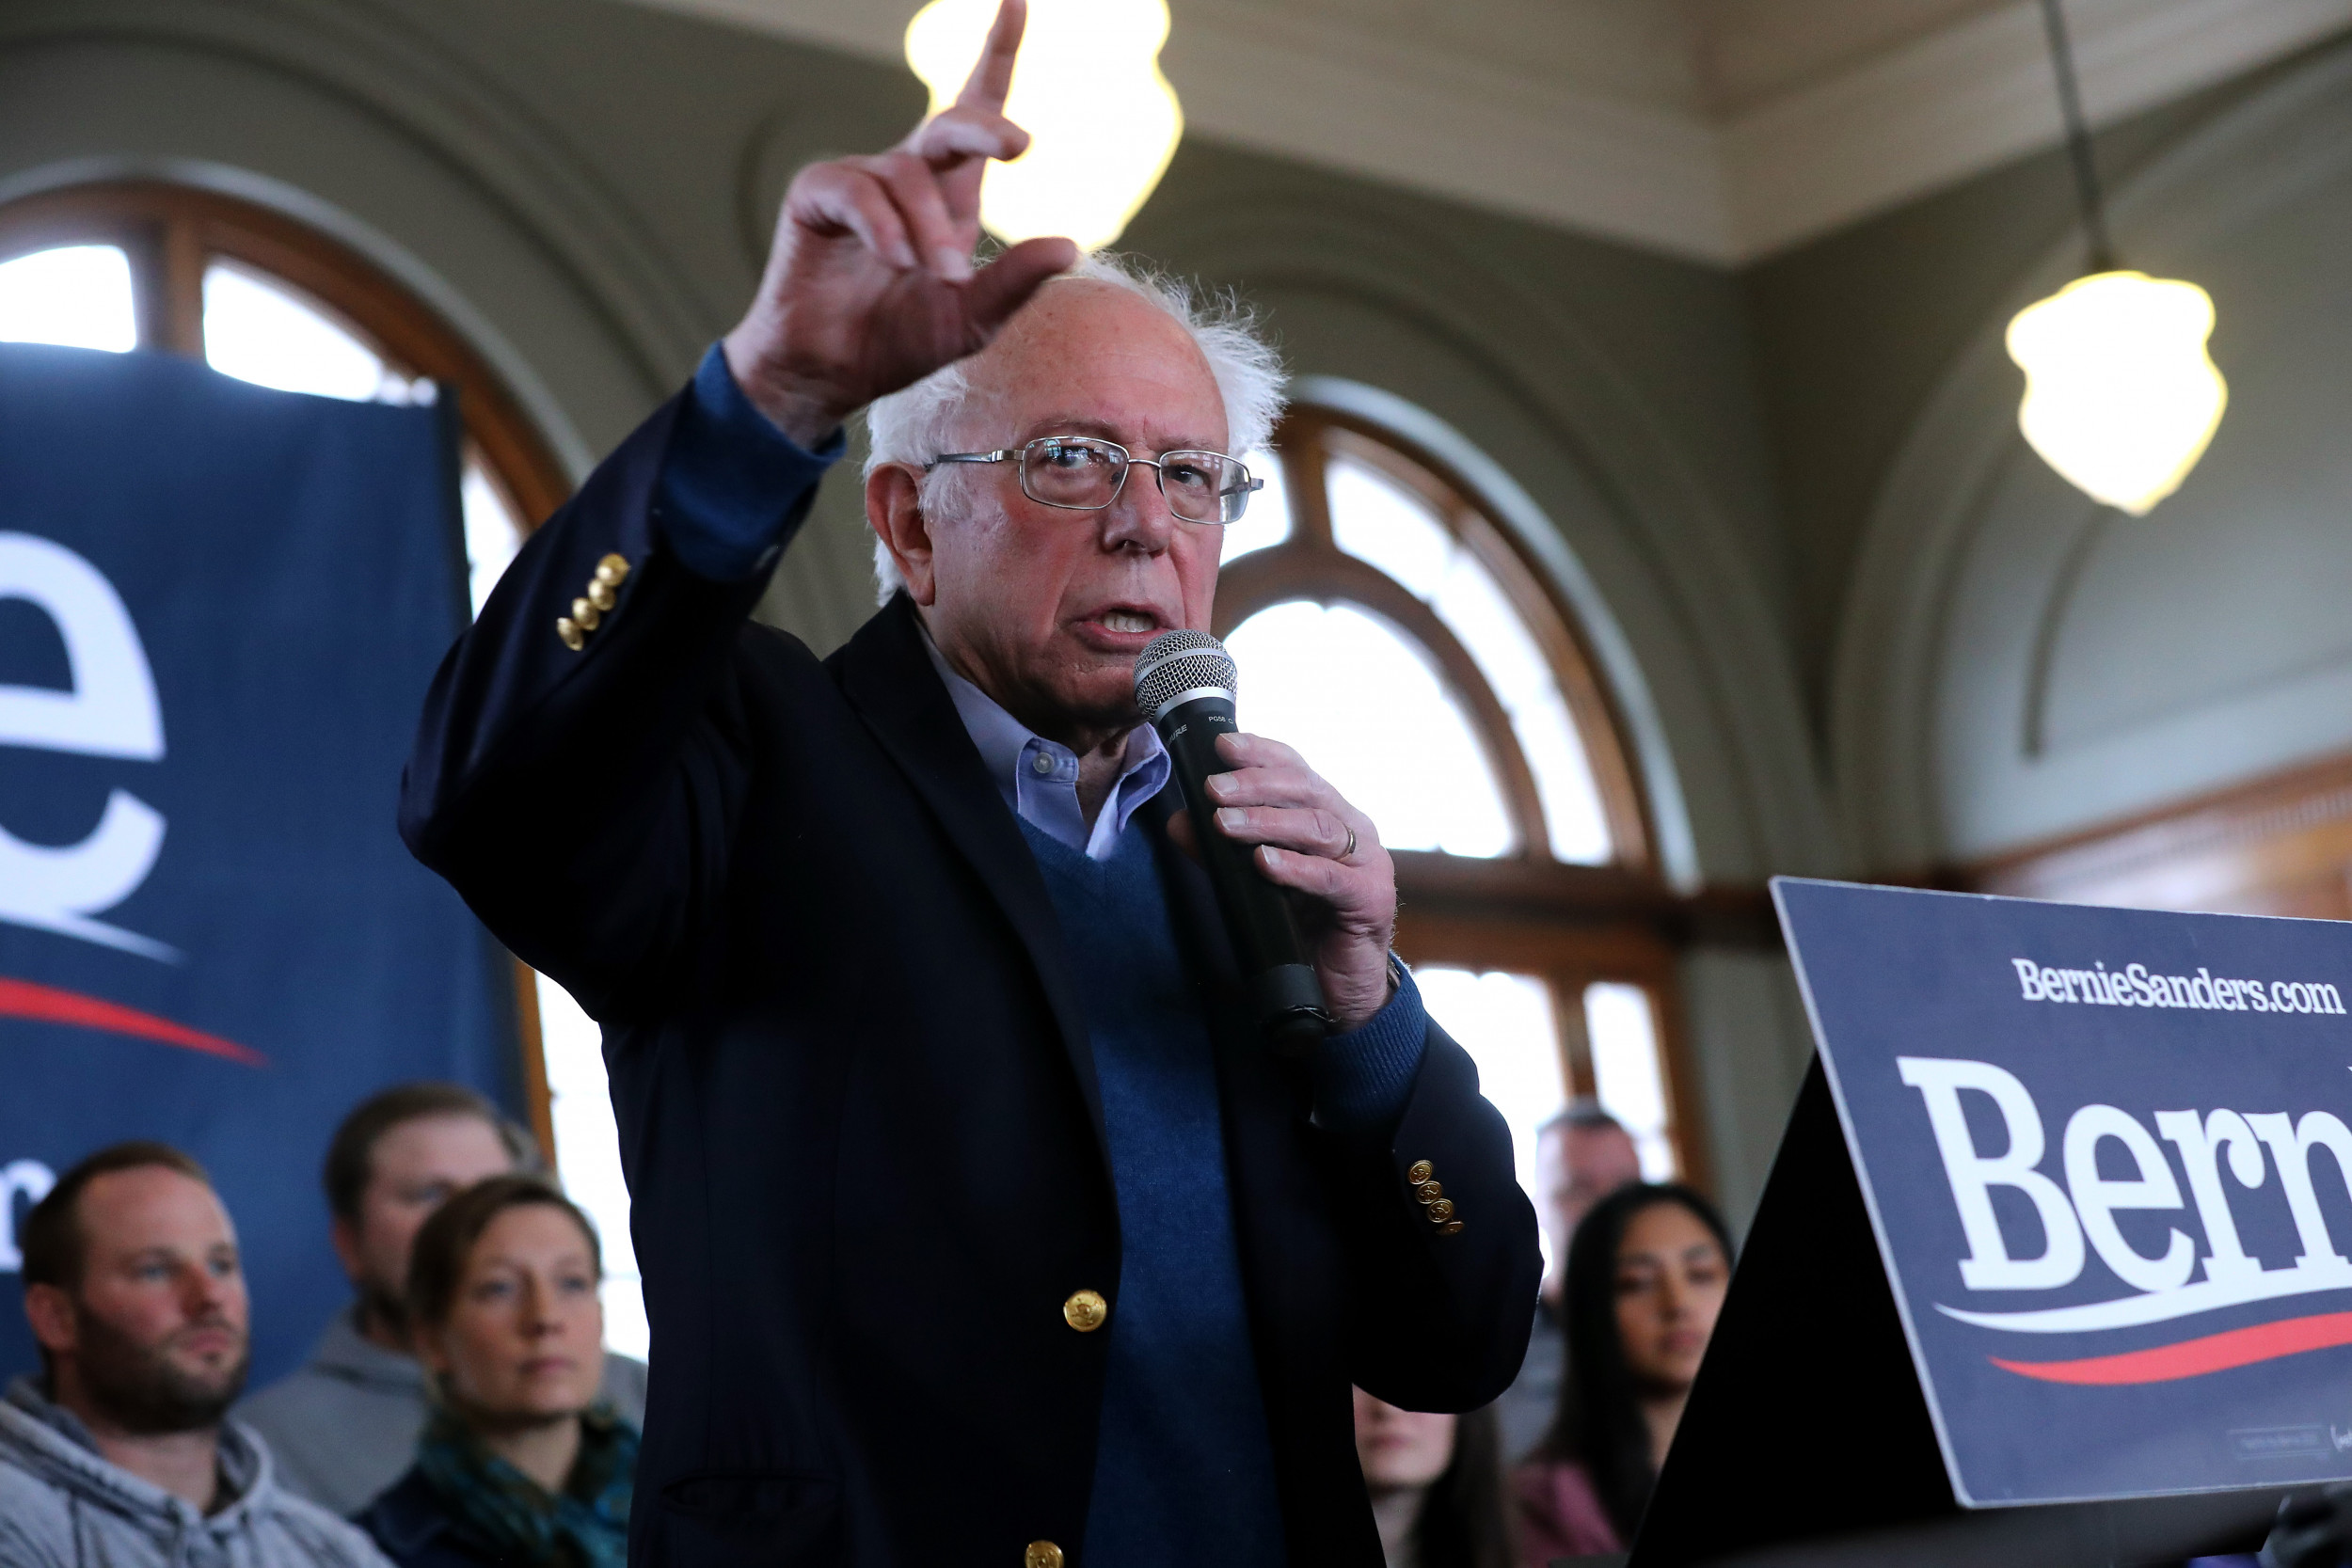 """Bernie Sanders vows to reverse """"every single thing"""" Trump has done on immigration as he surges to first in New Hampshire poll"""